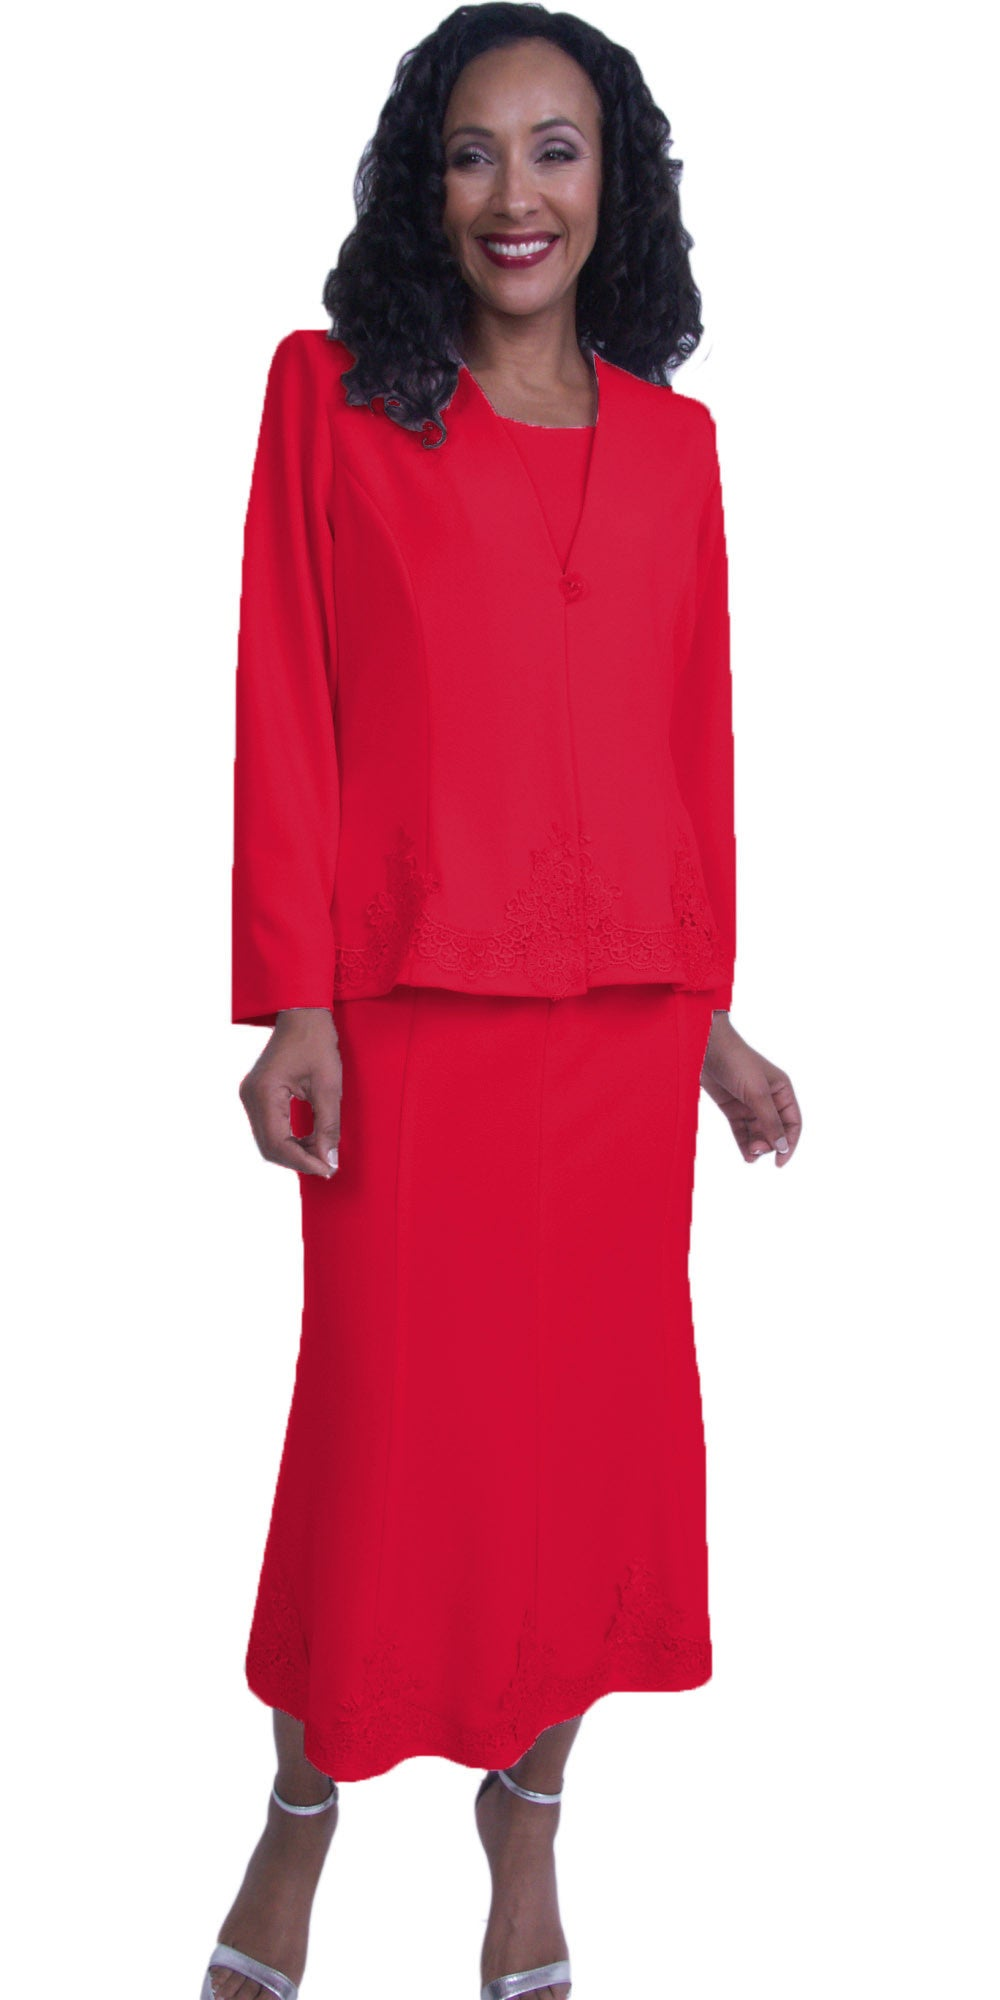 Red Embroidered Jacket and Skirt Modest Tea-Length Dress